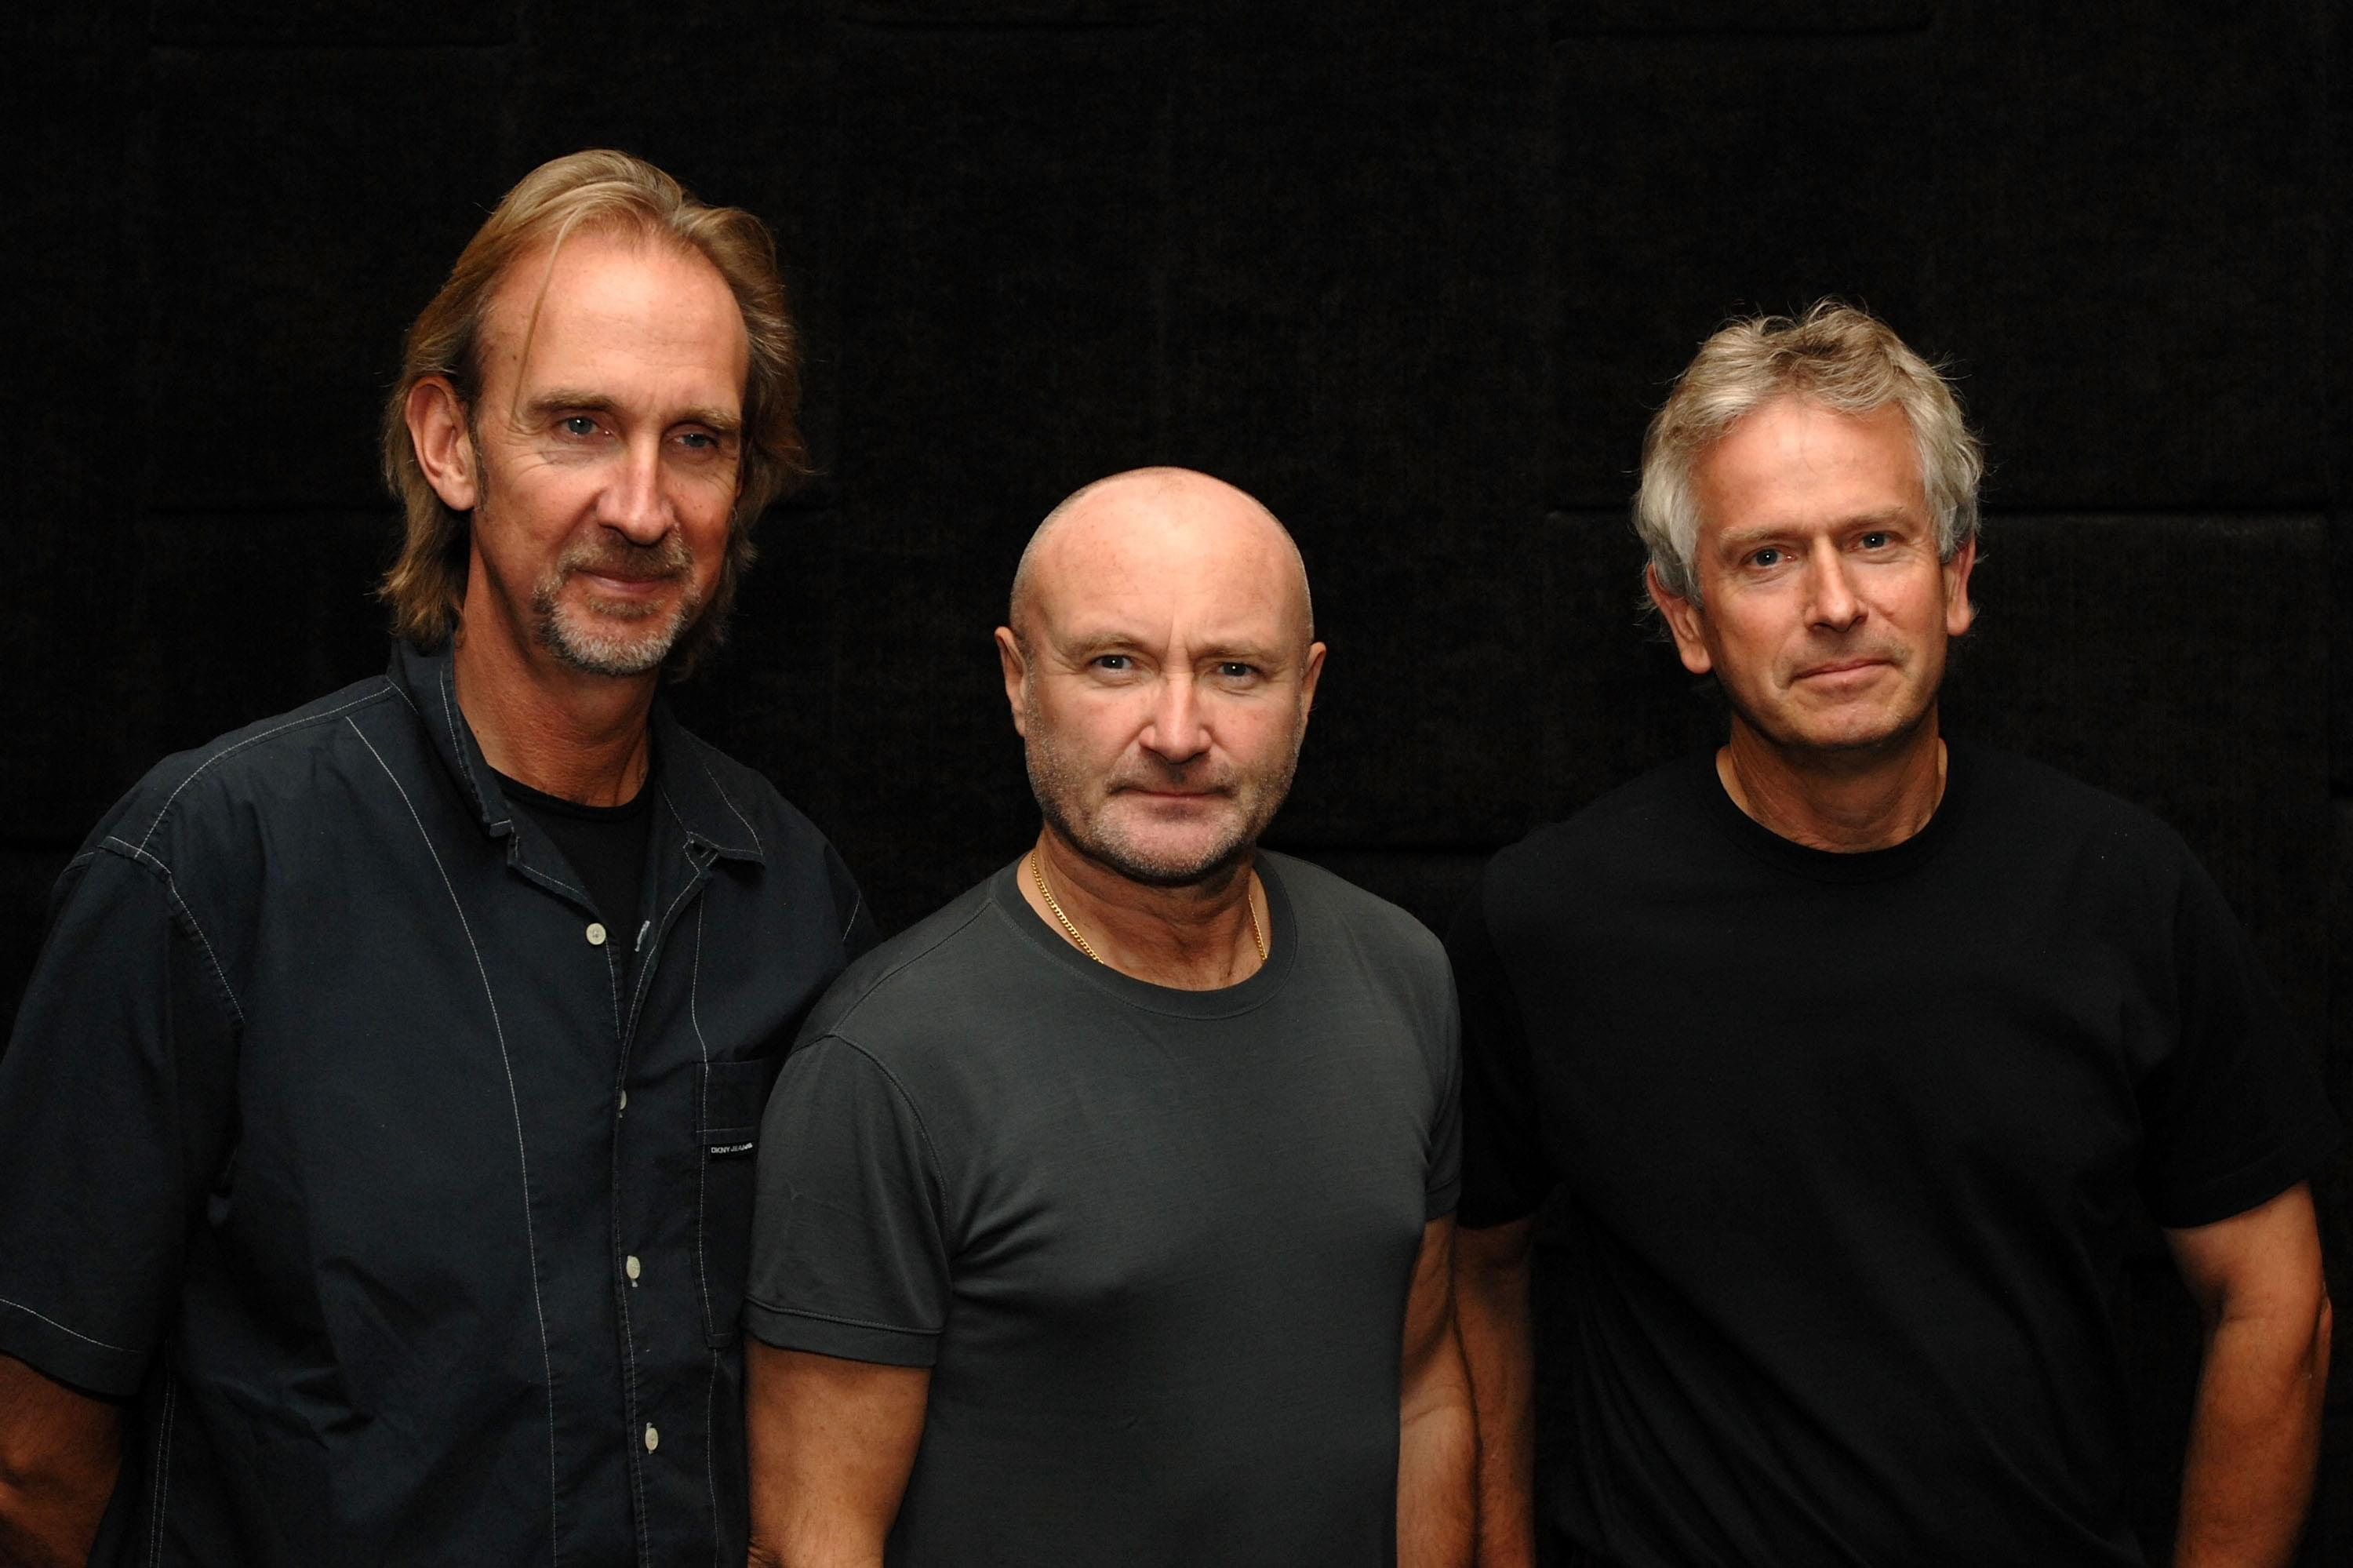 Phil Collins, Tony Banks, and Mike Rutherford spotted together… Could this mean Genesis is getting back together??